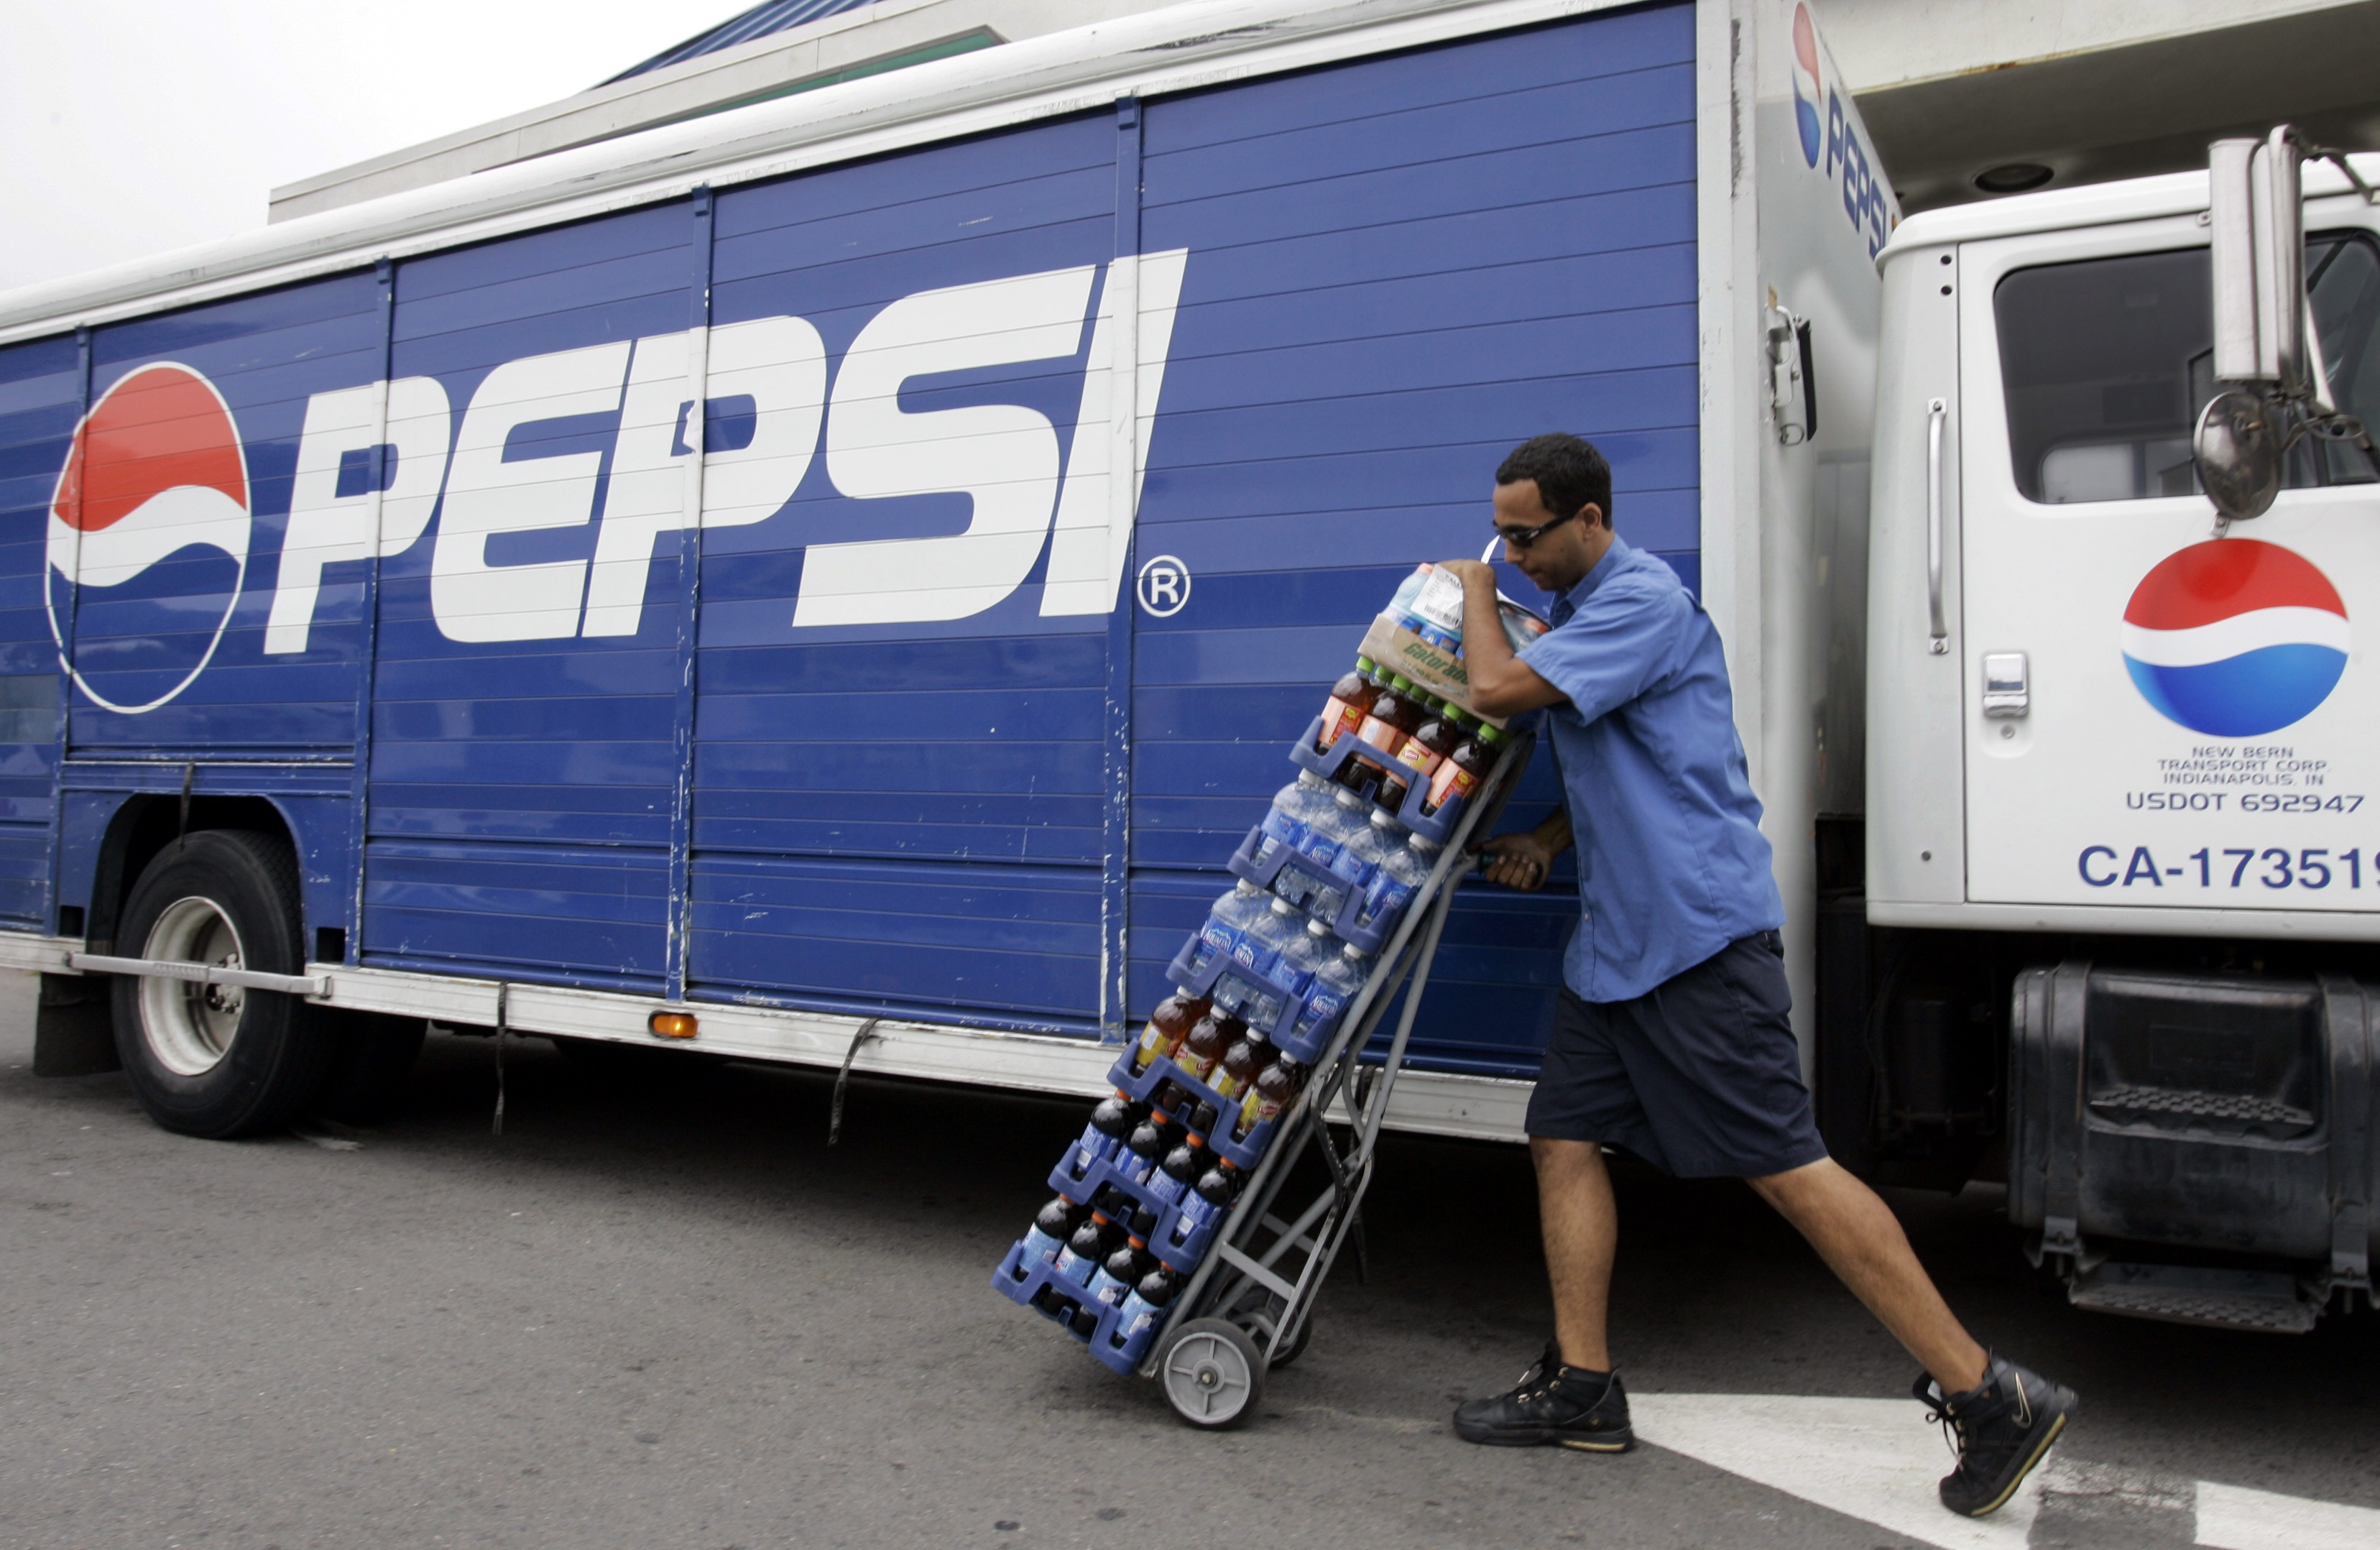 Pepsi delivery worker